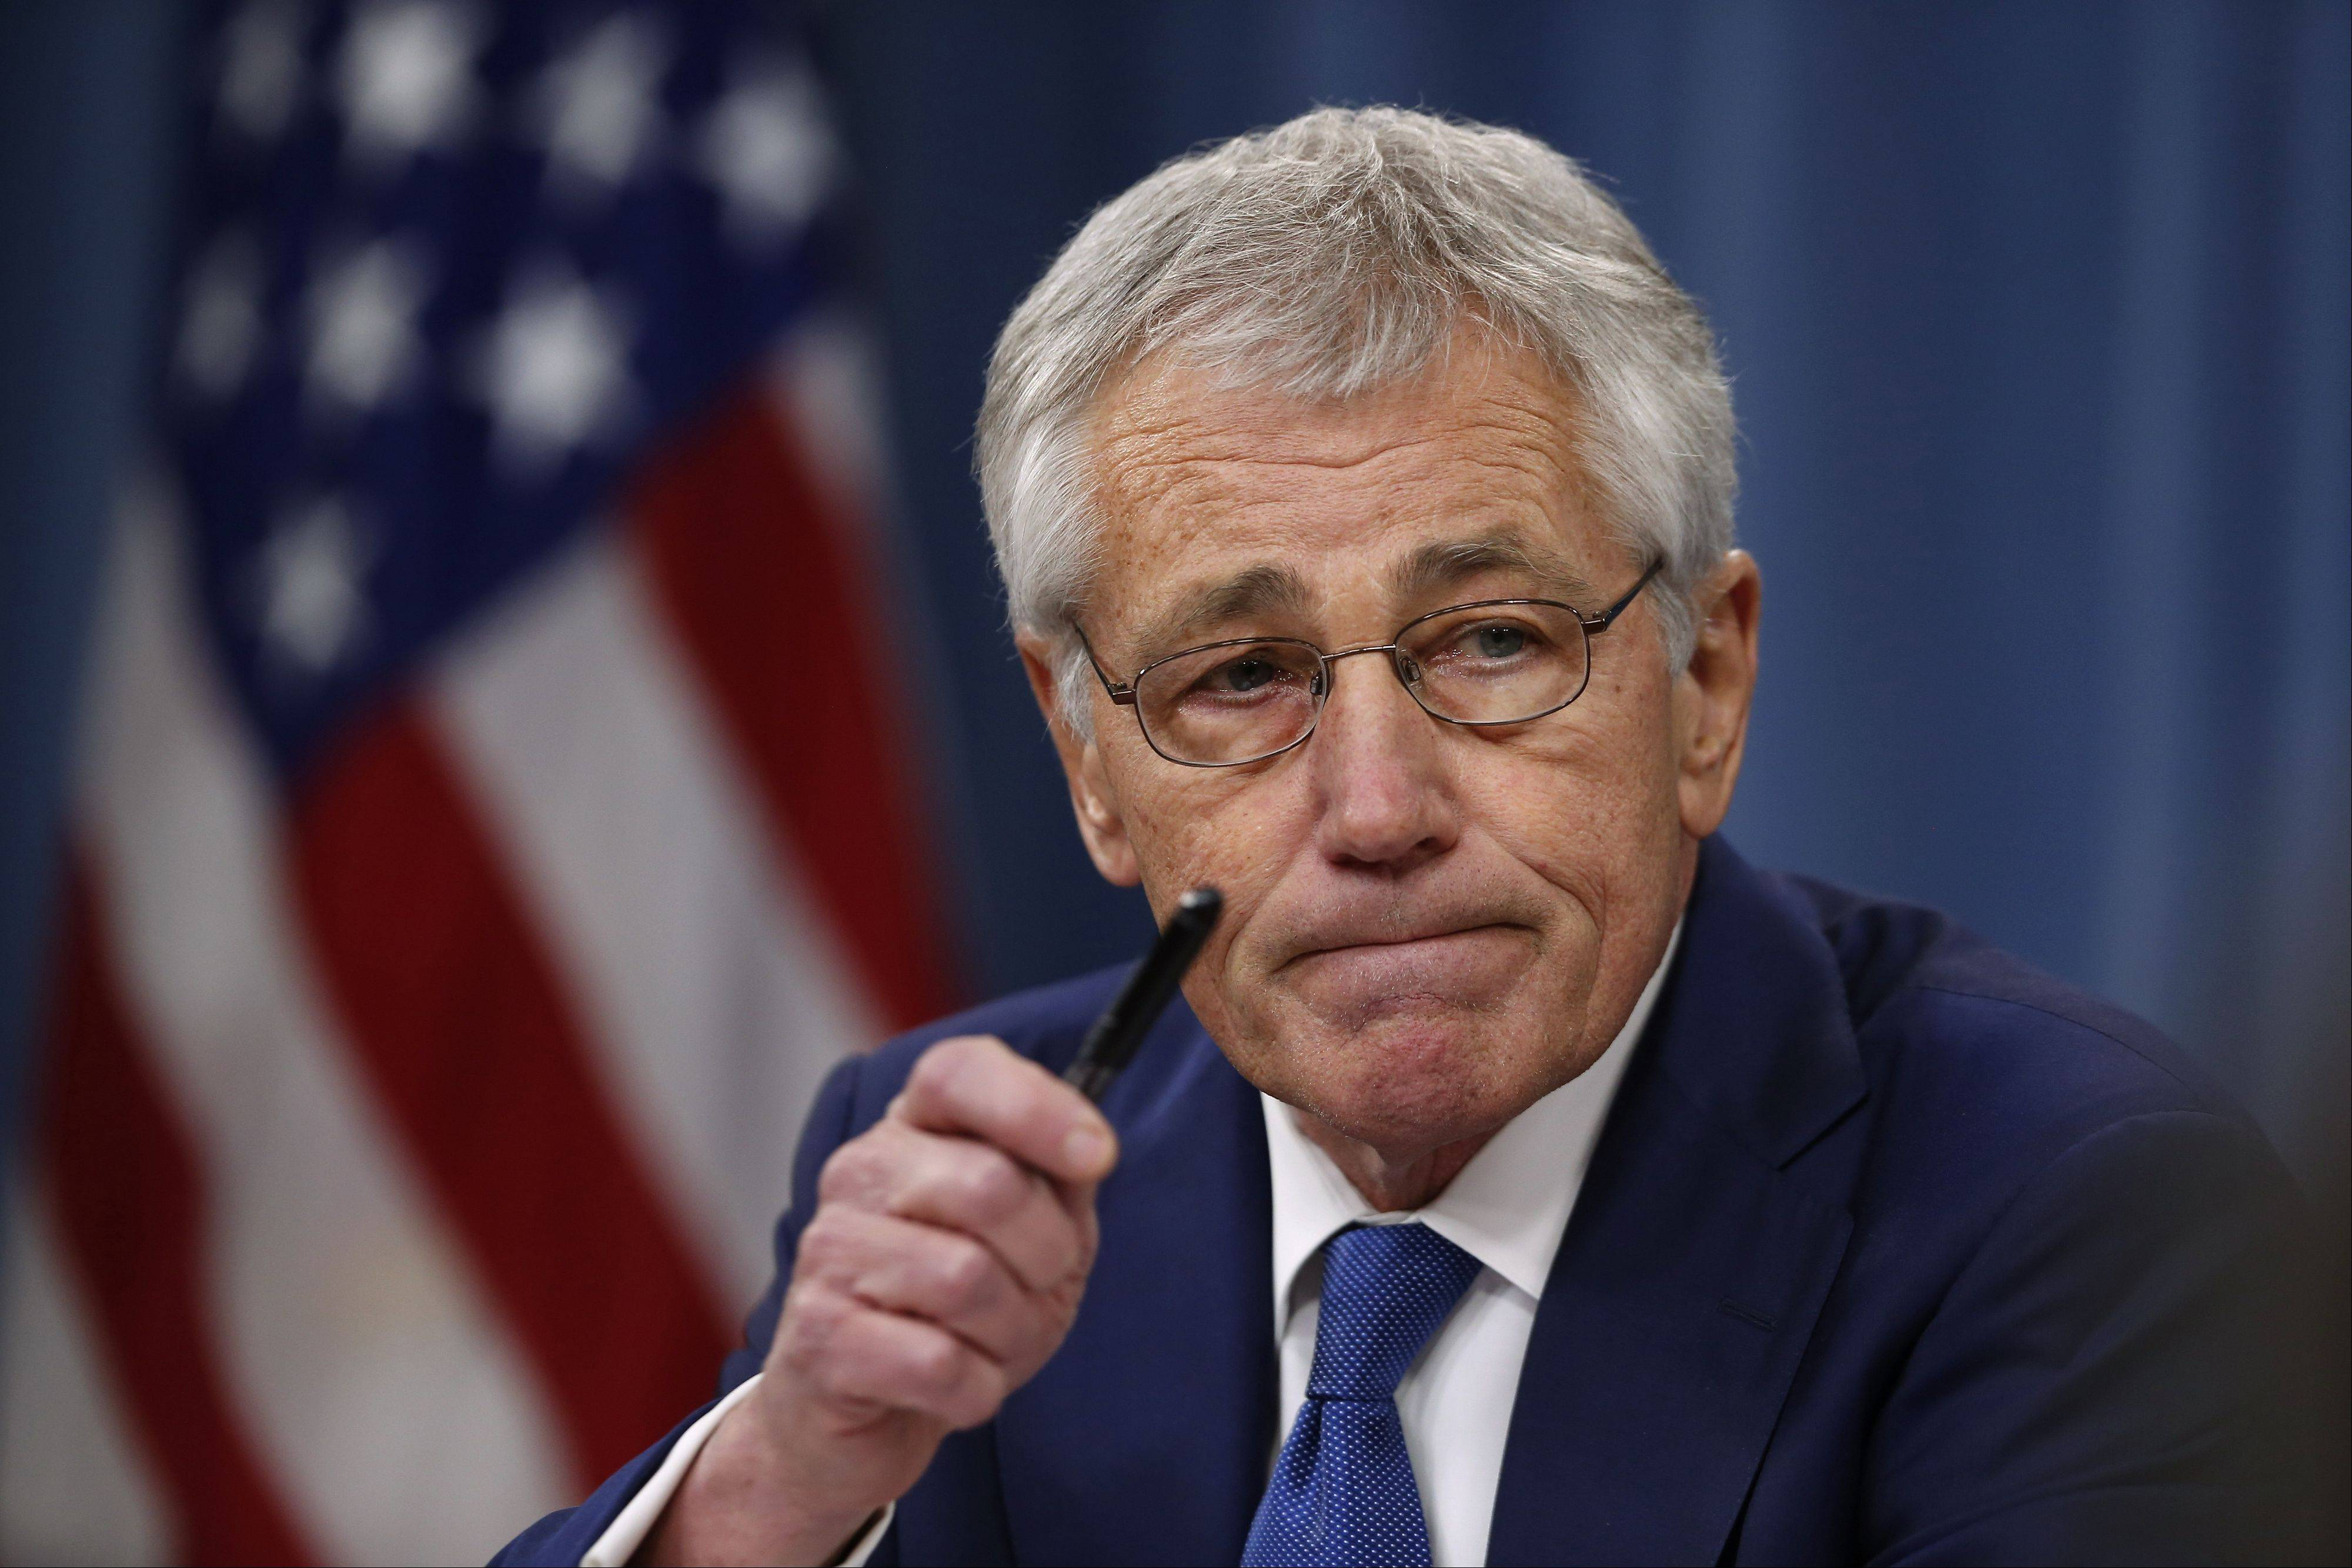 Defense Secretary Chuck Hagel ordered immediate actions Thursday to define the depth of trouble inside the nation's nuclear force, which has been rocked by disclosures about security lapses, poor discipline, weak morale and other problems that raise questions about nuclear security.